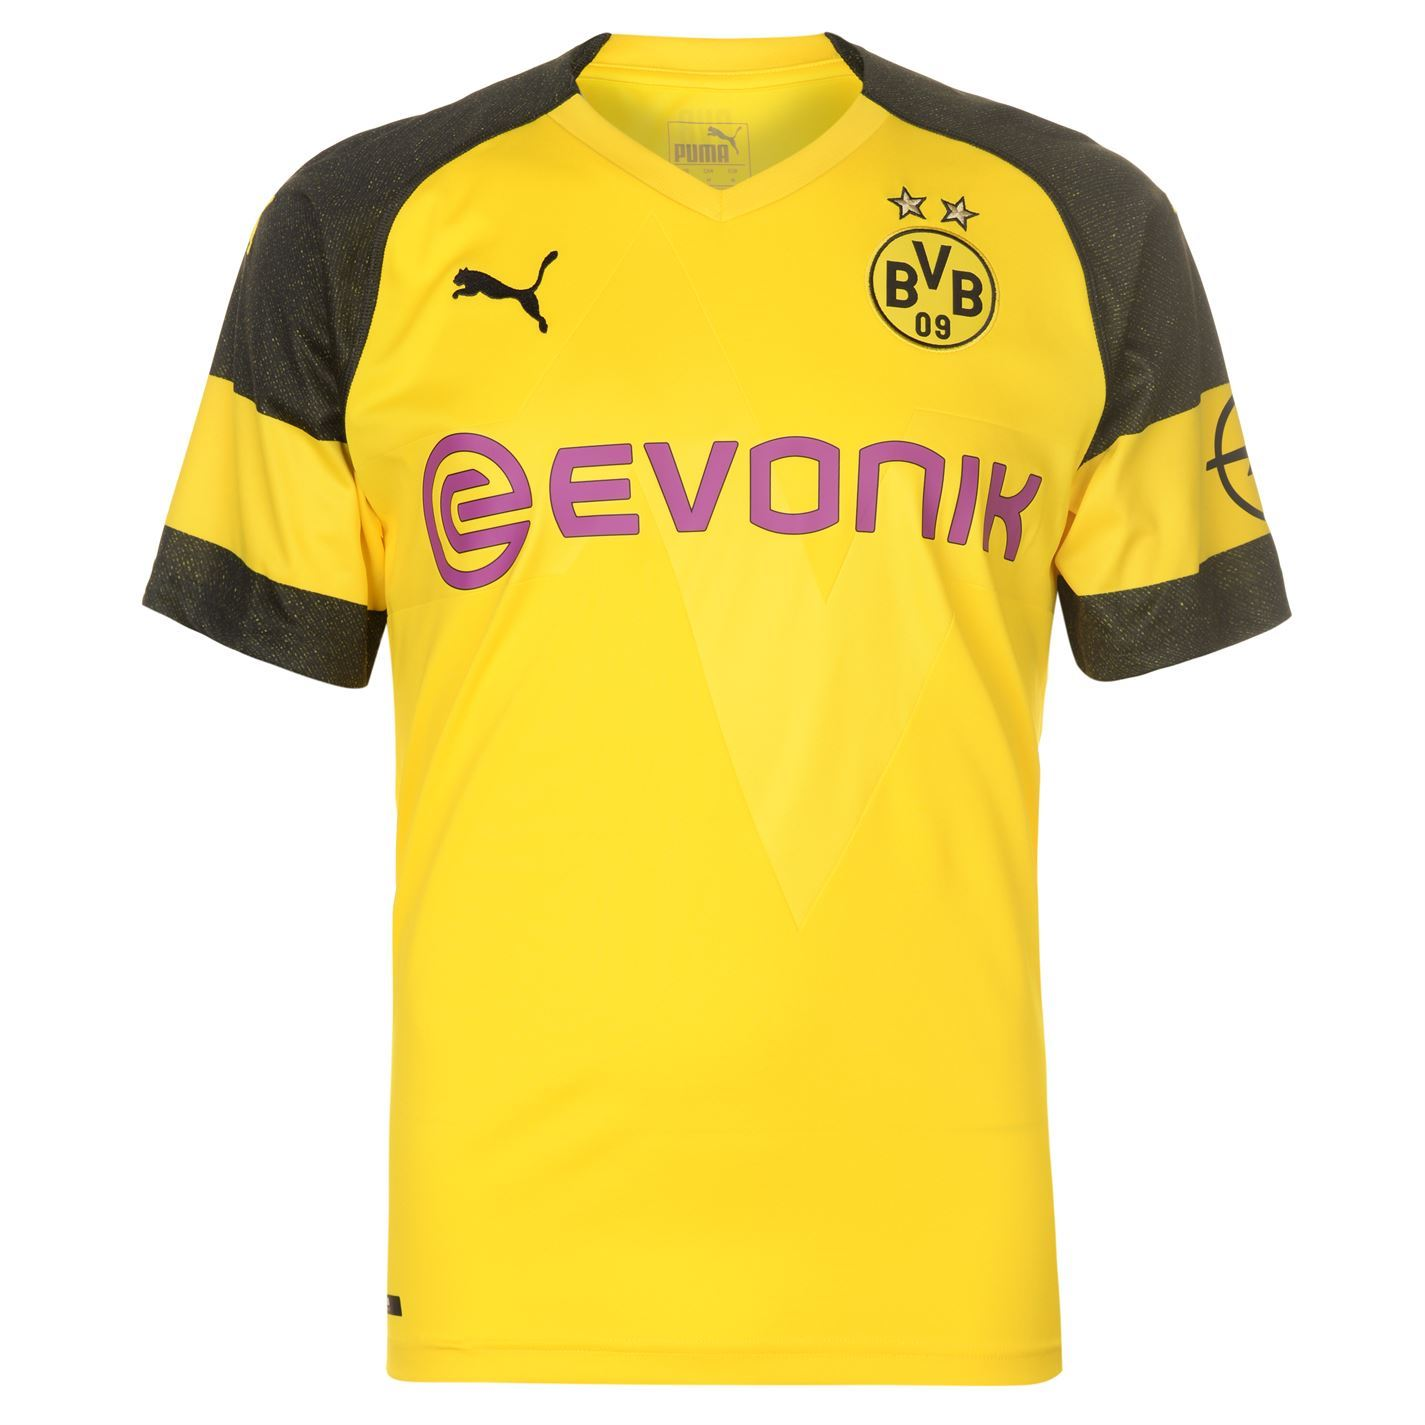 ... Puma Borussia Dortmund Home Jersey 2018-19 Mens Yellow Blk Football  Soccer Shirt ... aaa5c6212